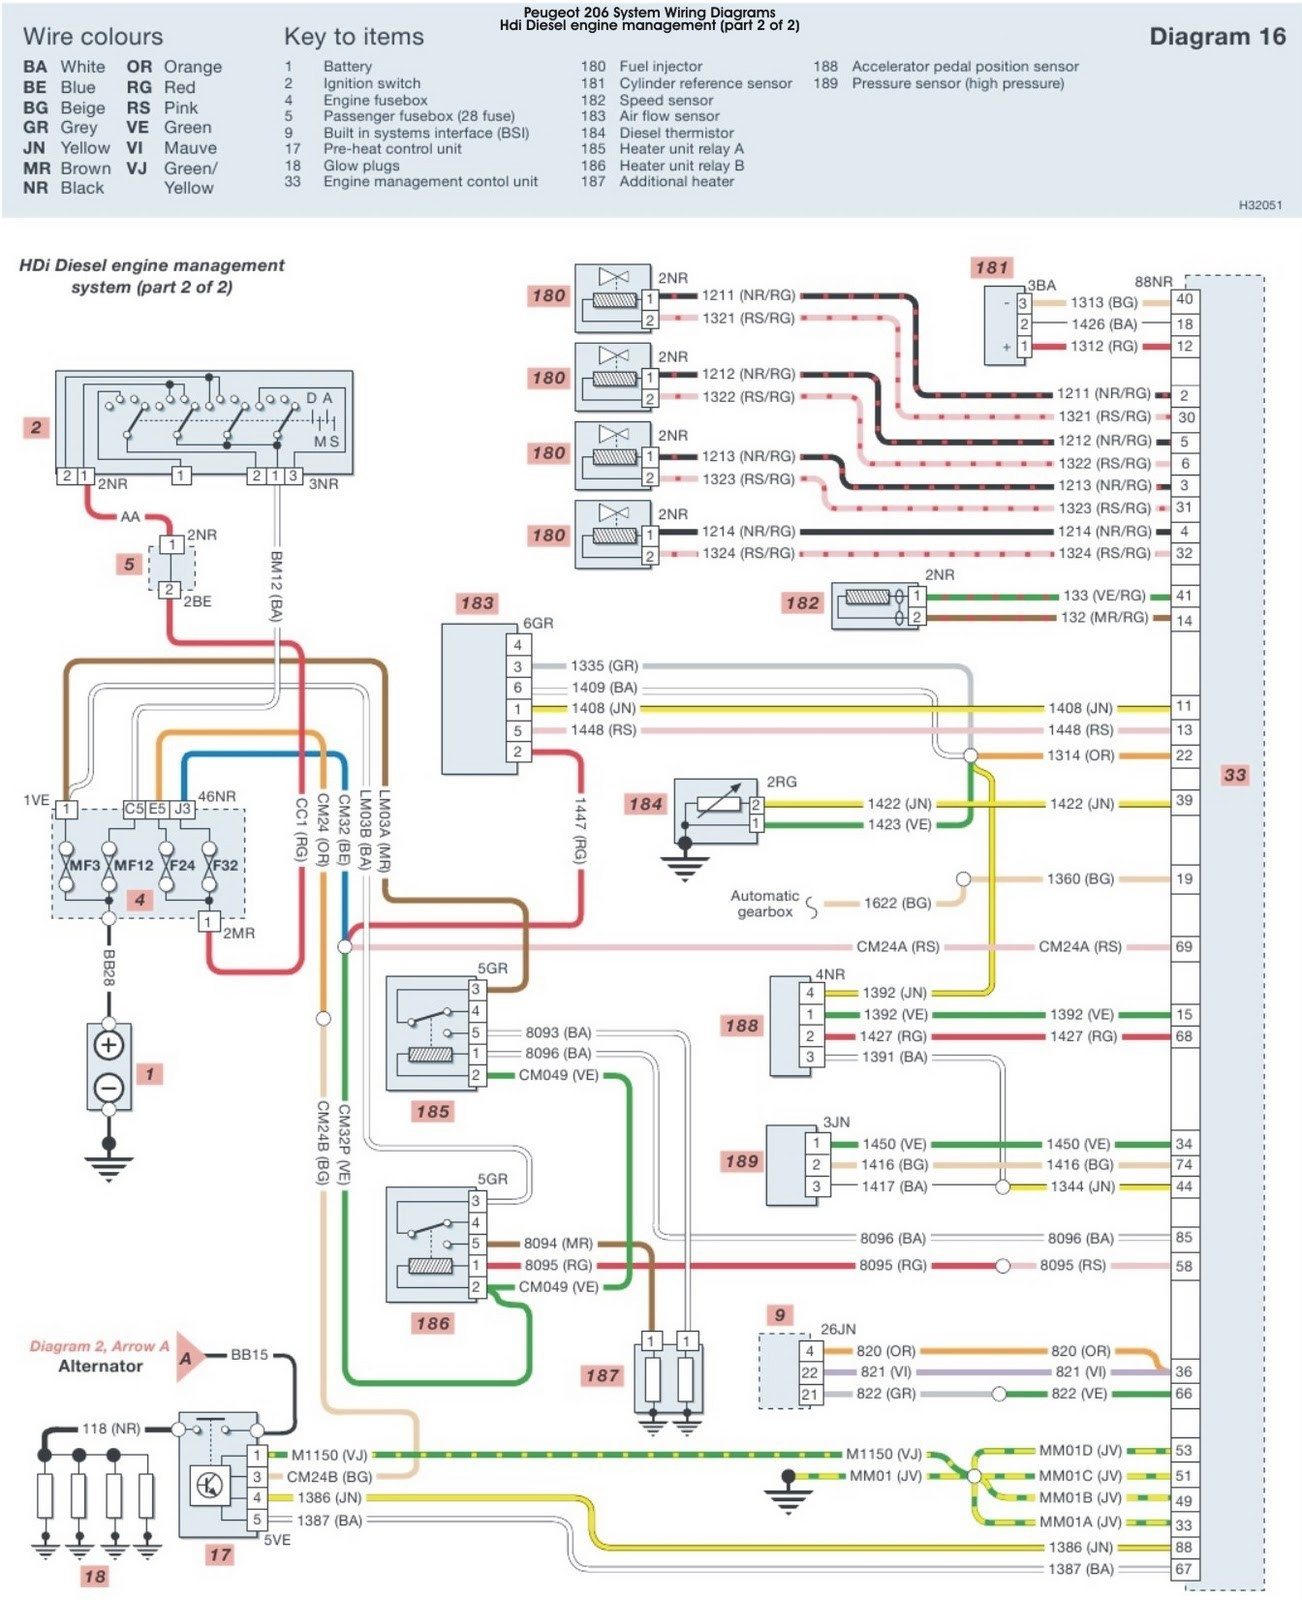 Wiring diagram peugeot 206 application wiring diagram peugeot 206 engine diagram my wiring diagram rh detoxicrecenze com peugeot 206 wiring diagram bsi wiring swarovskicordoba Image collections